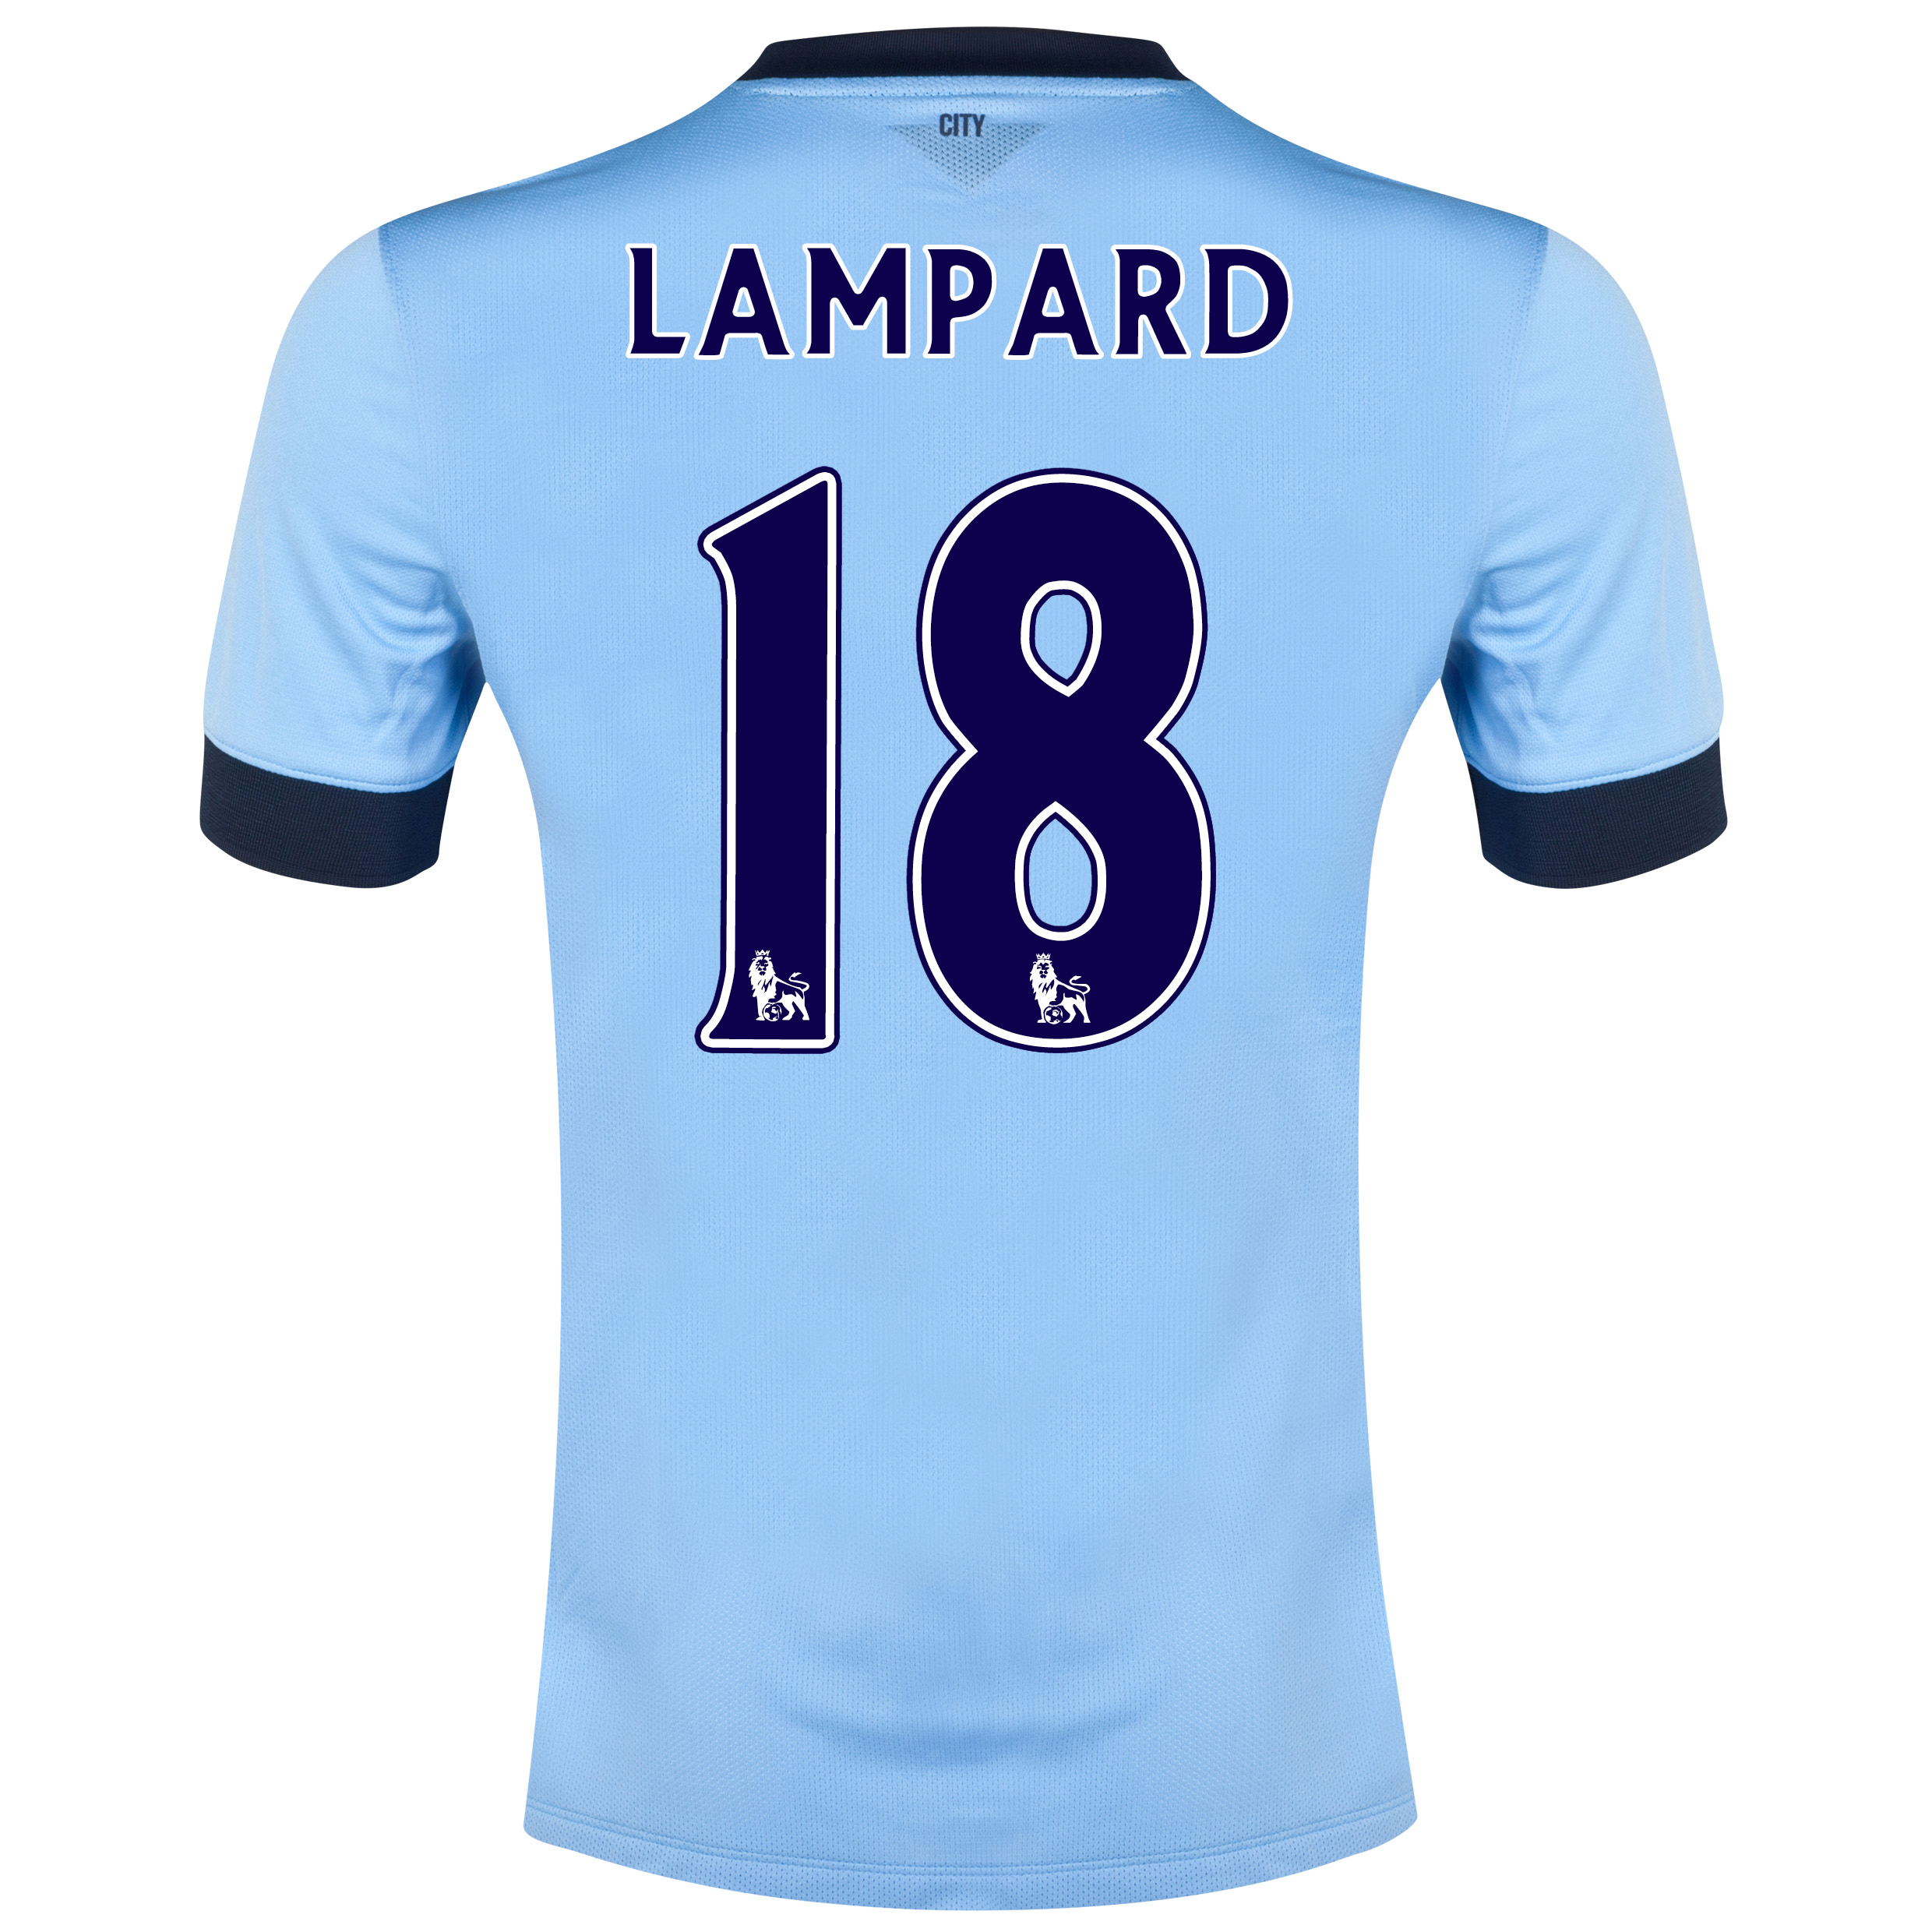 Manchester City Home Shirt 2014/15 Sky Blue with Lampard 18 printing